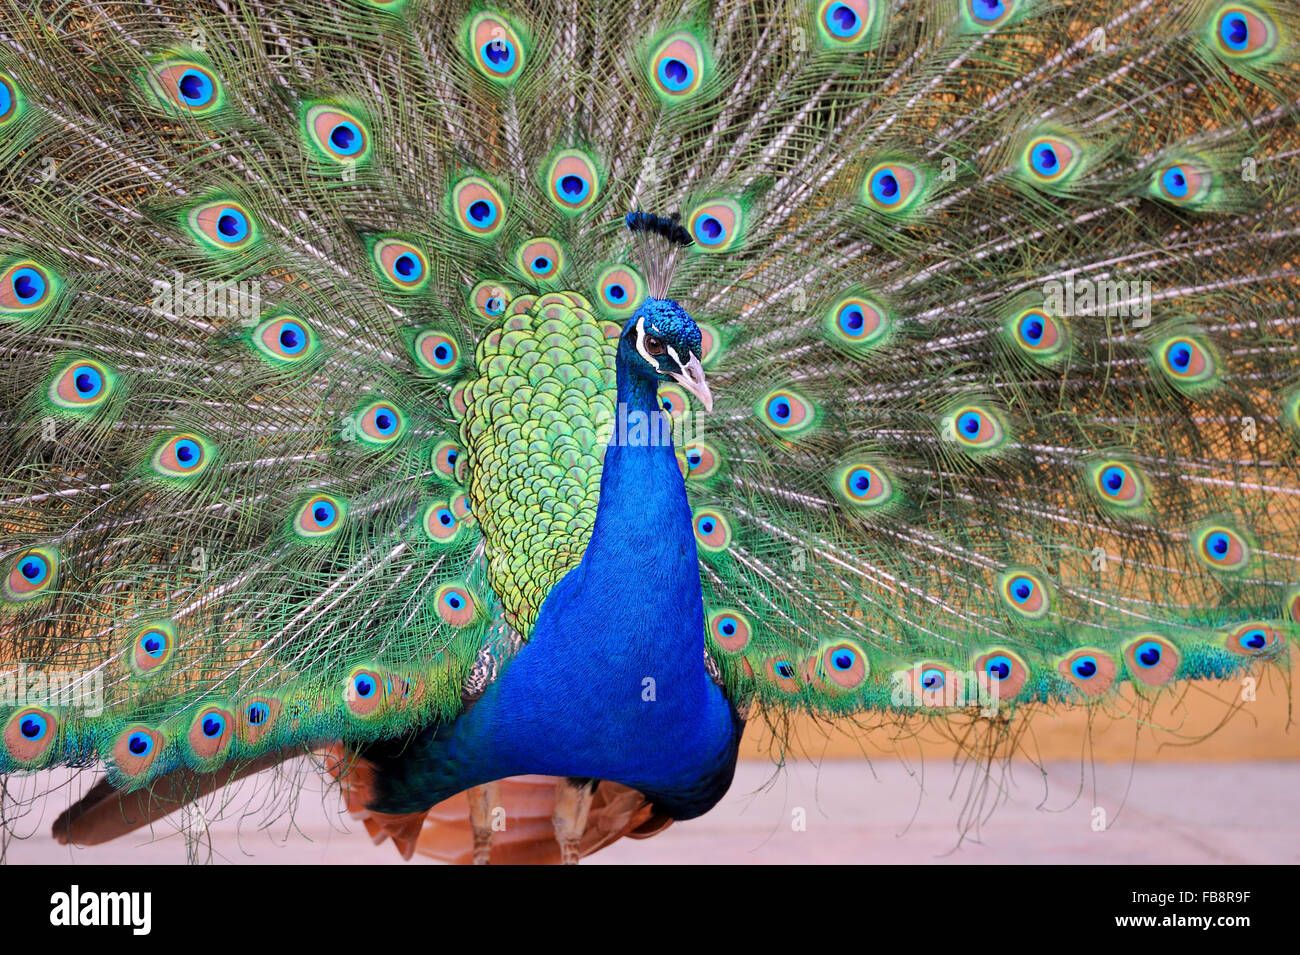 Portrait of peacock posing with feathers out - Stock Image